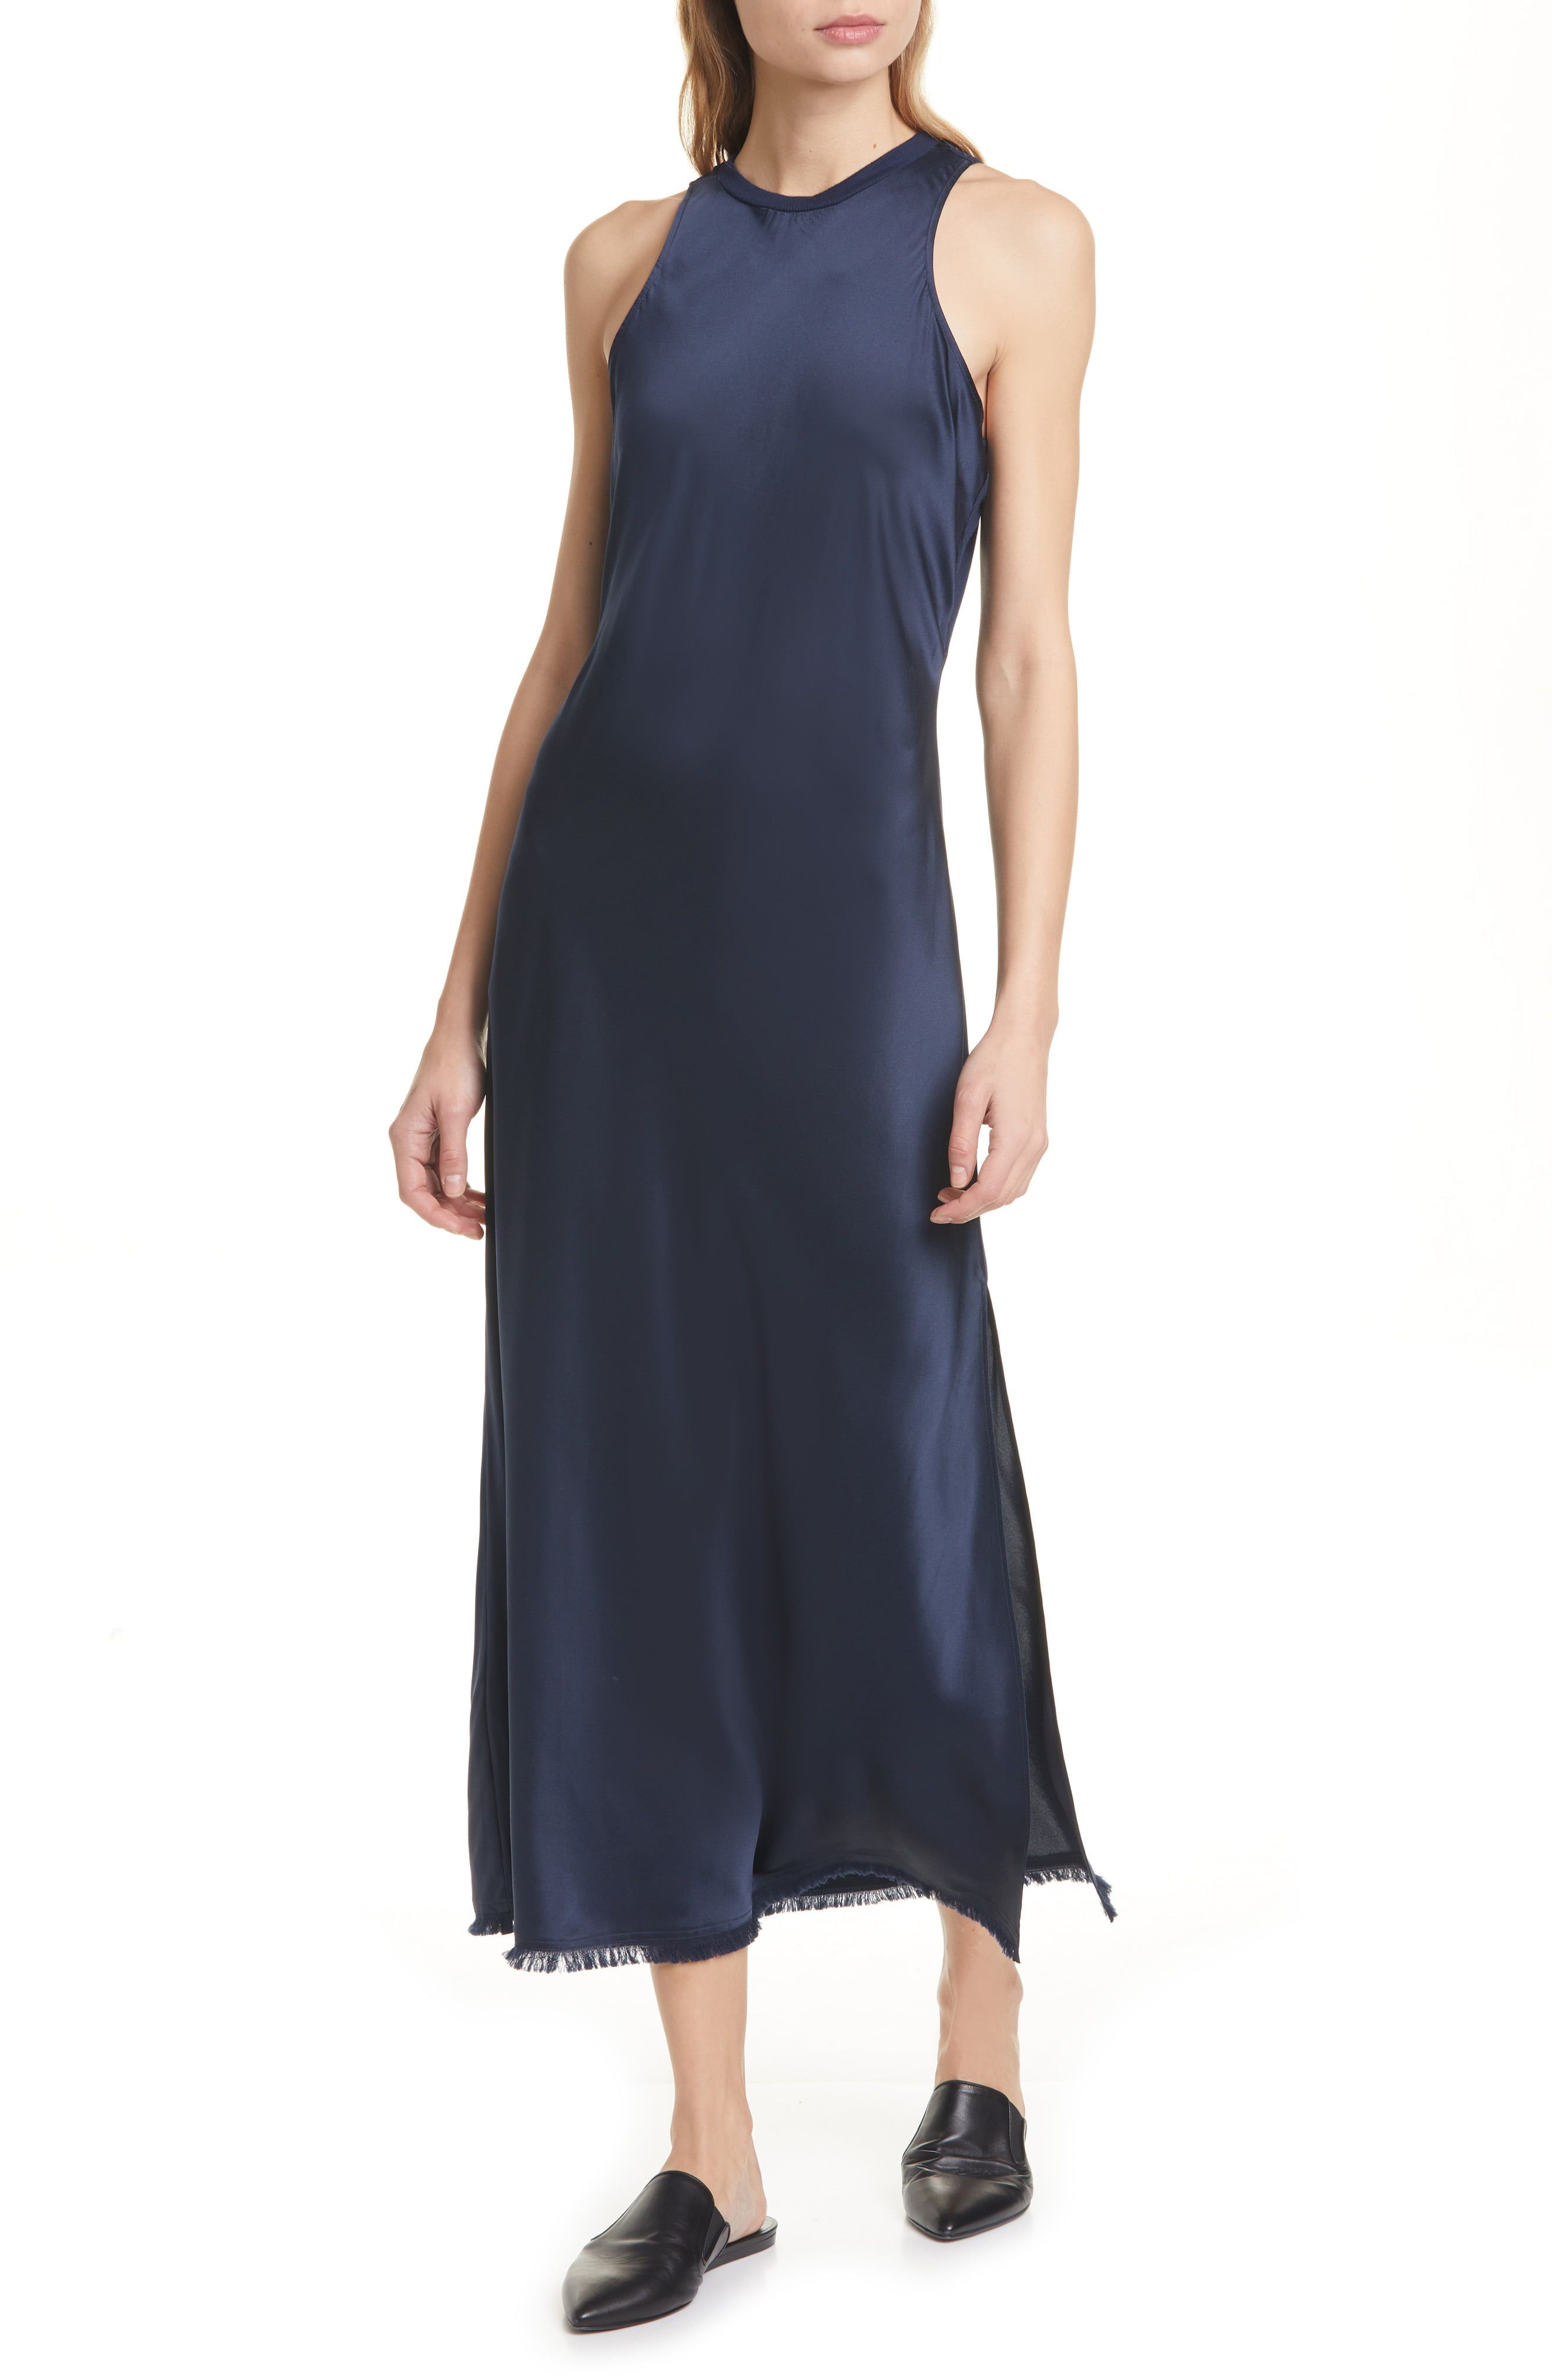 Cut from fluid silk satin that's washable for easy care, this tank dress with a softly fringed hem is cut on the bias for easy, elegant drape. Style Name:Frame Washable Bias Cut Silk Satin Dress. Style Number: 6055286. Available in stores.